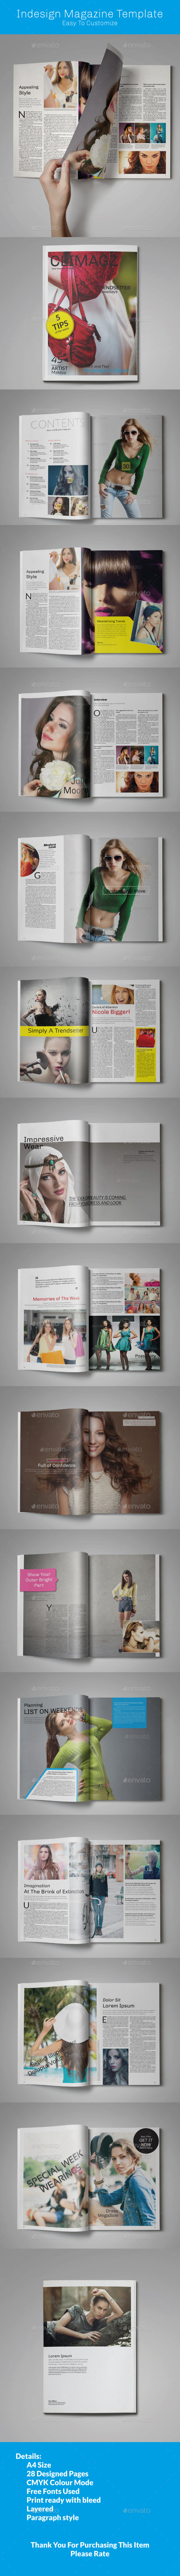 GraphicRiver Clean and Modern Magazine Template 11610588